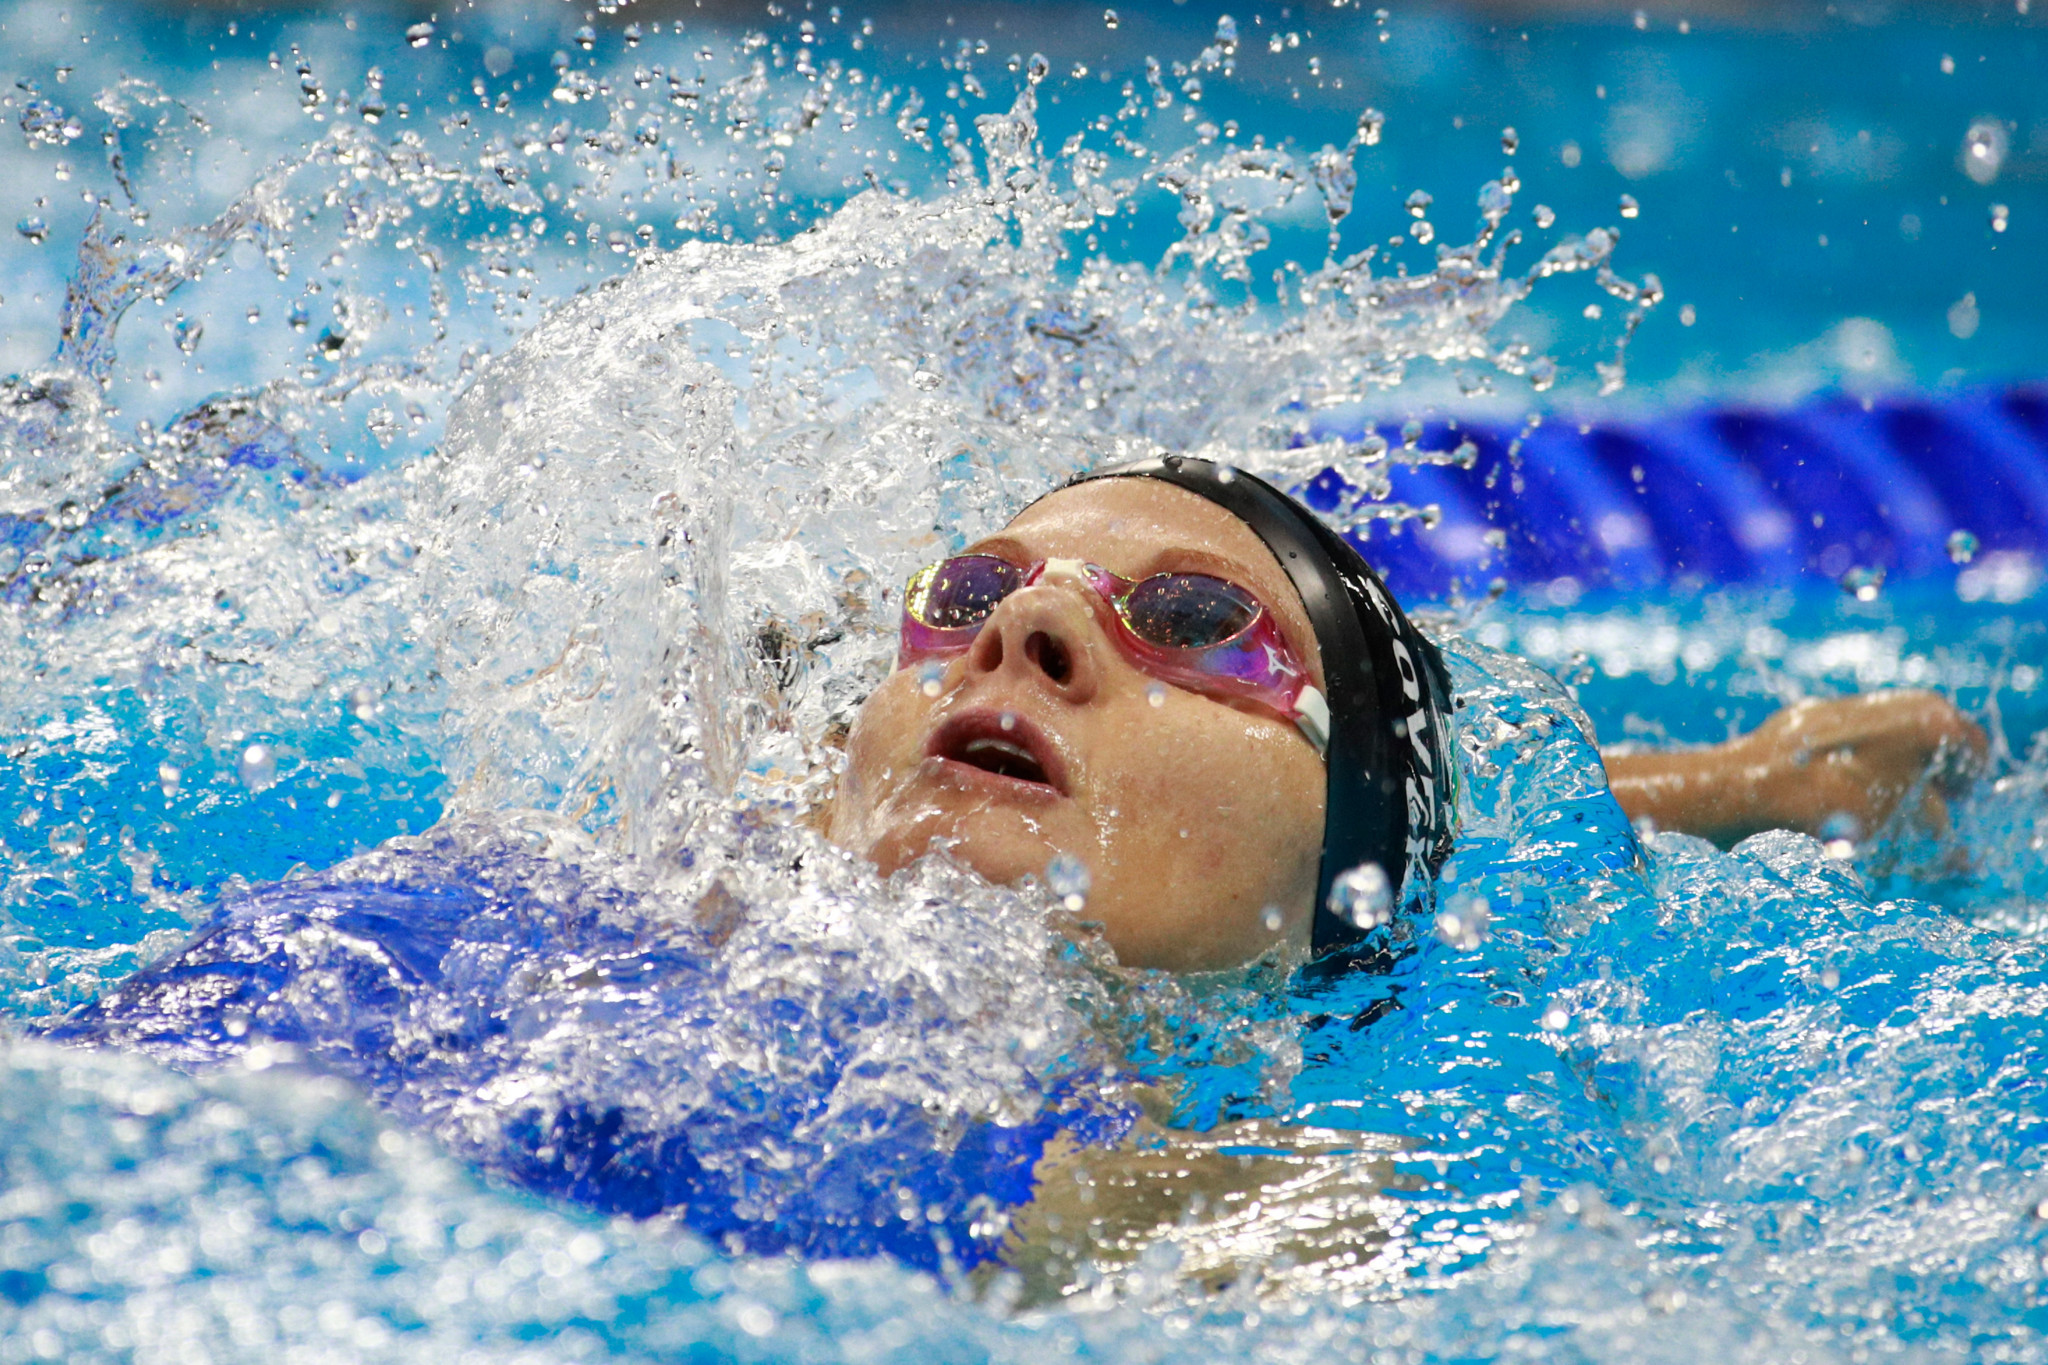 Kirsty Coventry claims Olympic Solidarity funding helped her own swimming career ©Getty Images